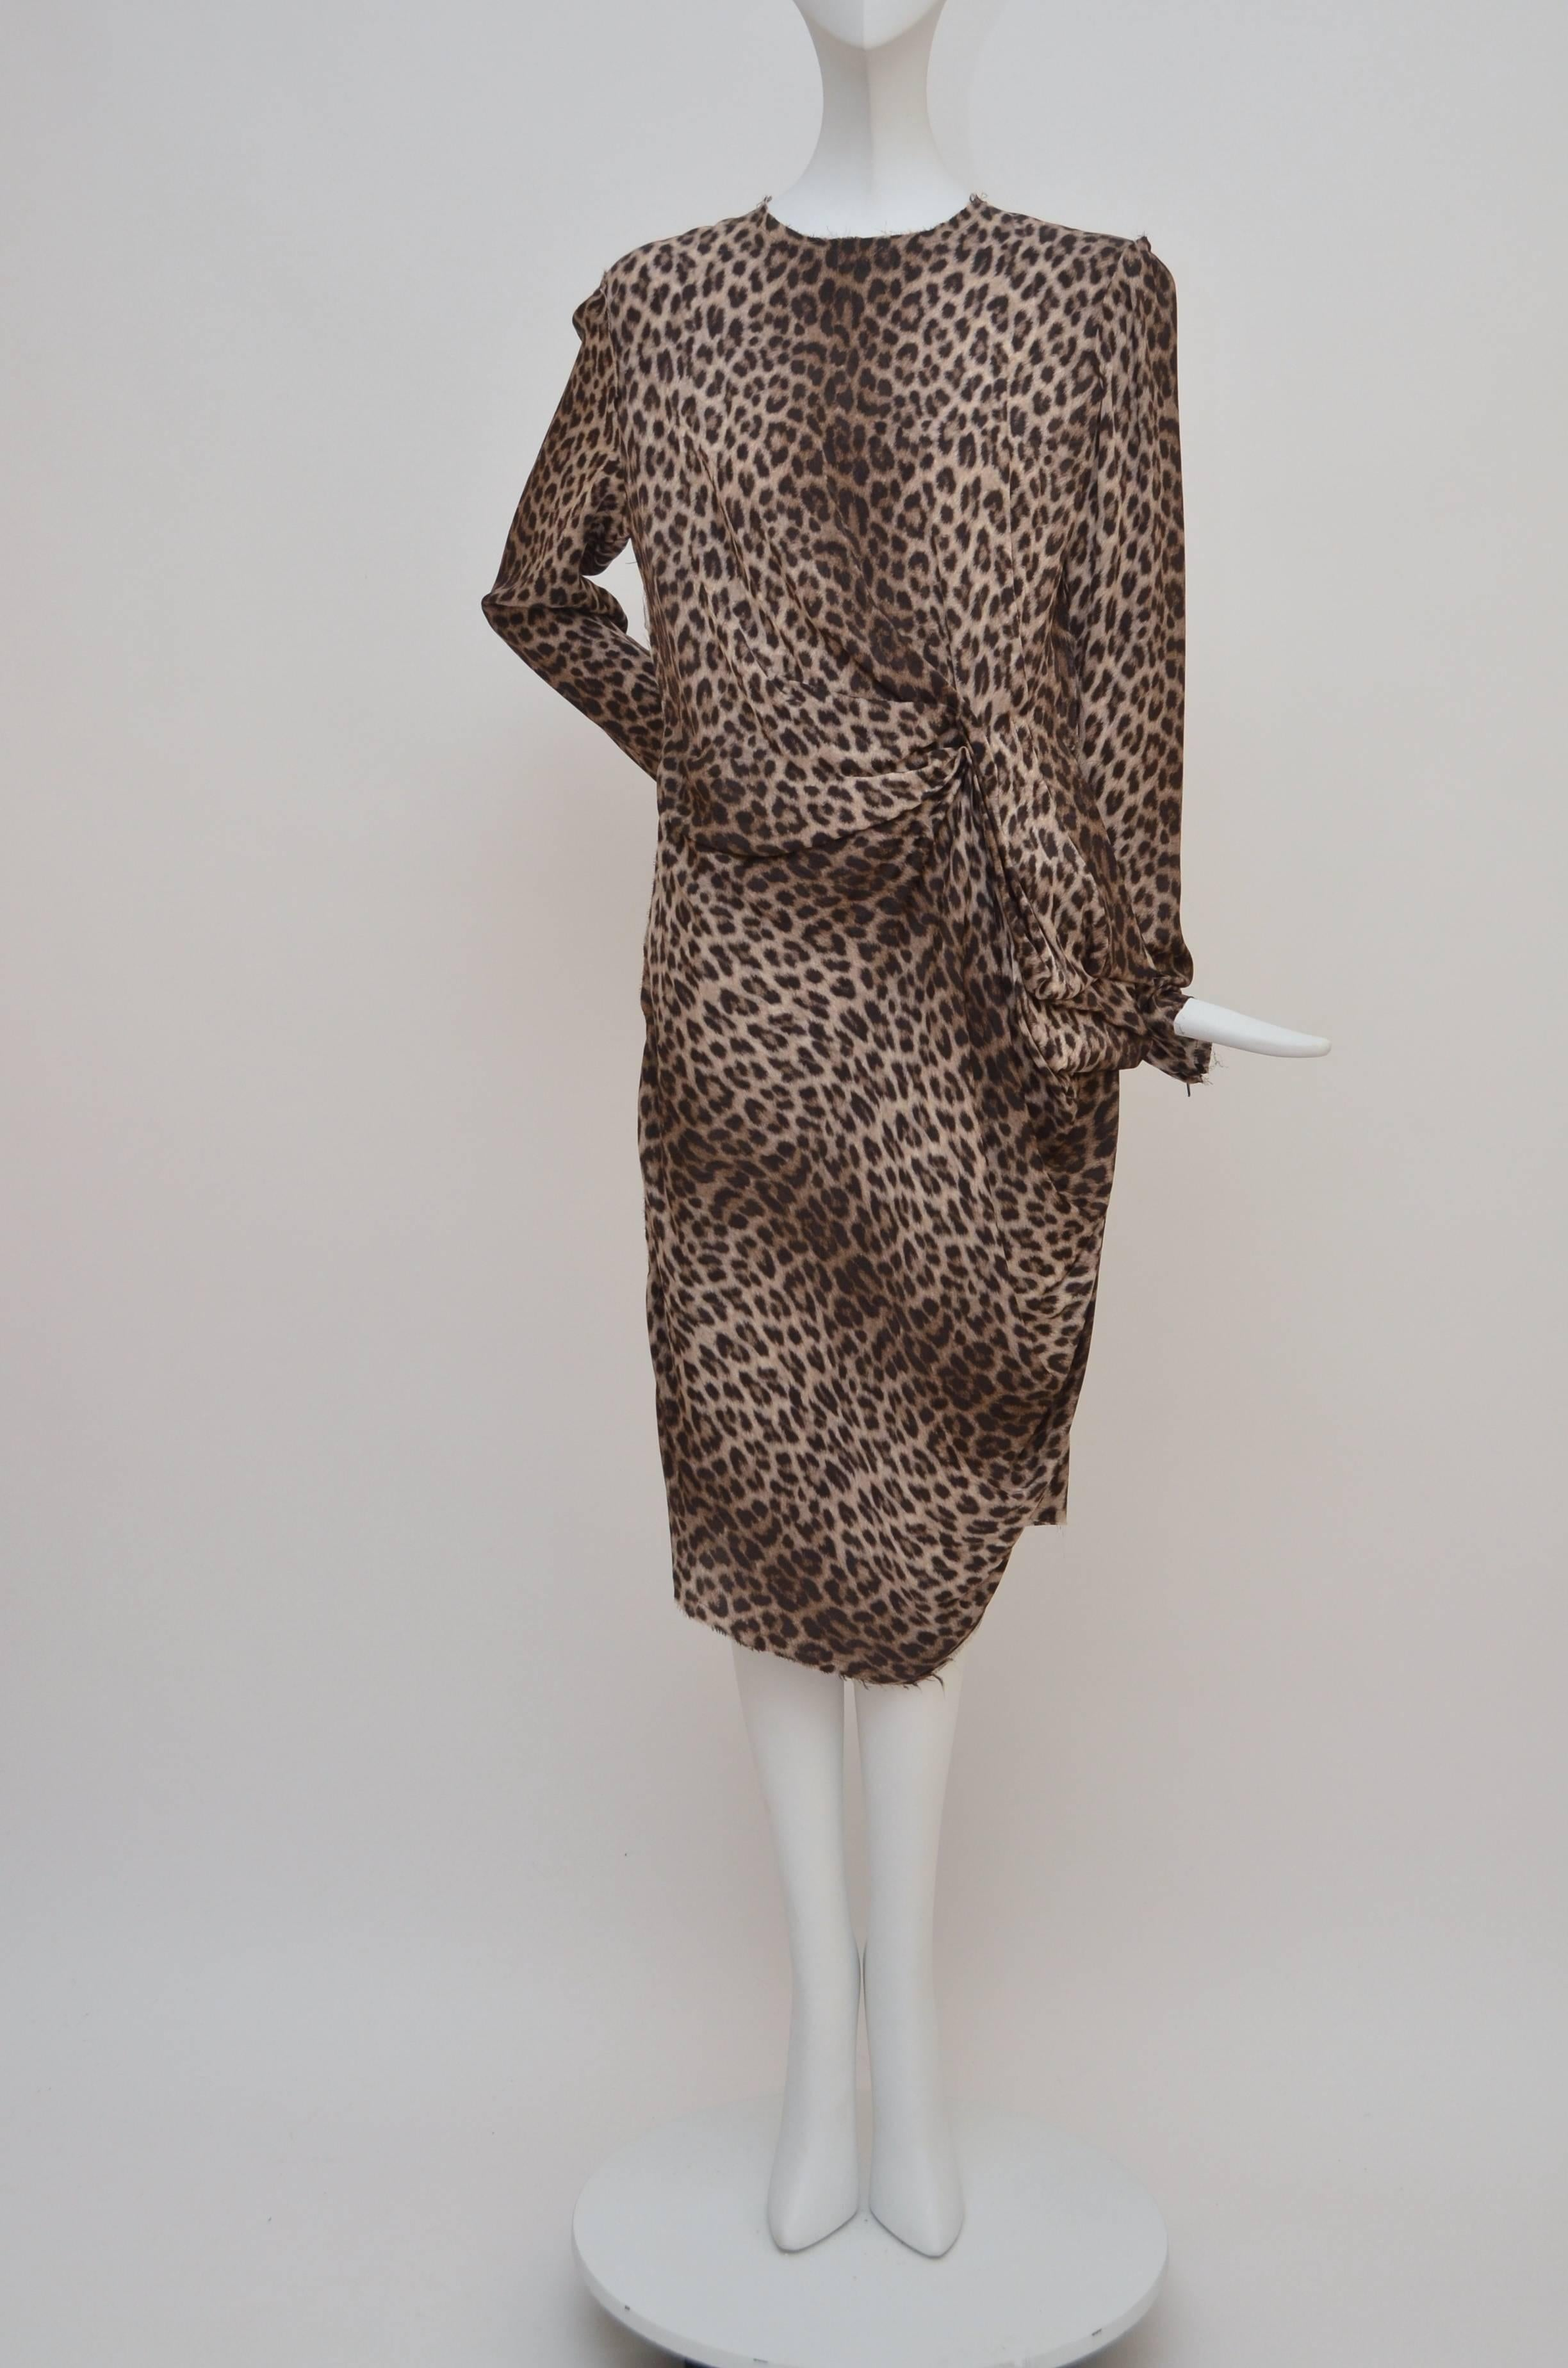 0d2d34dc1f8c Lanvin Hiver Pre-Fall 2010 Long Sleeved Leopard Print Cocktail Dress New 40  For Sale at 1stdibs